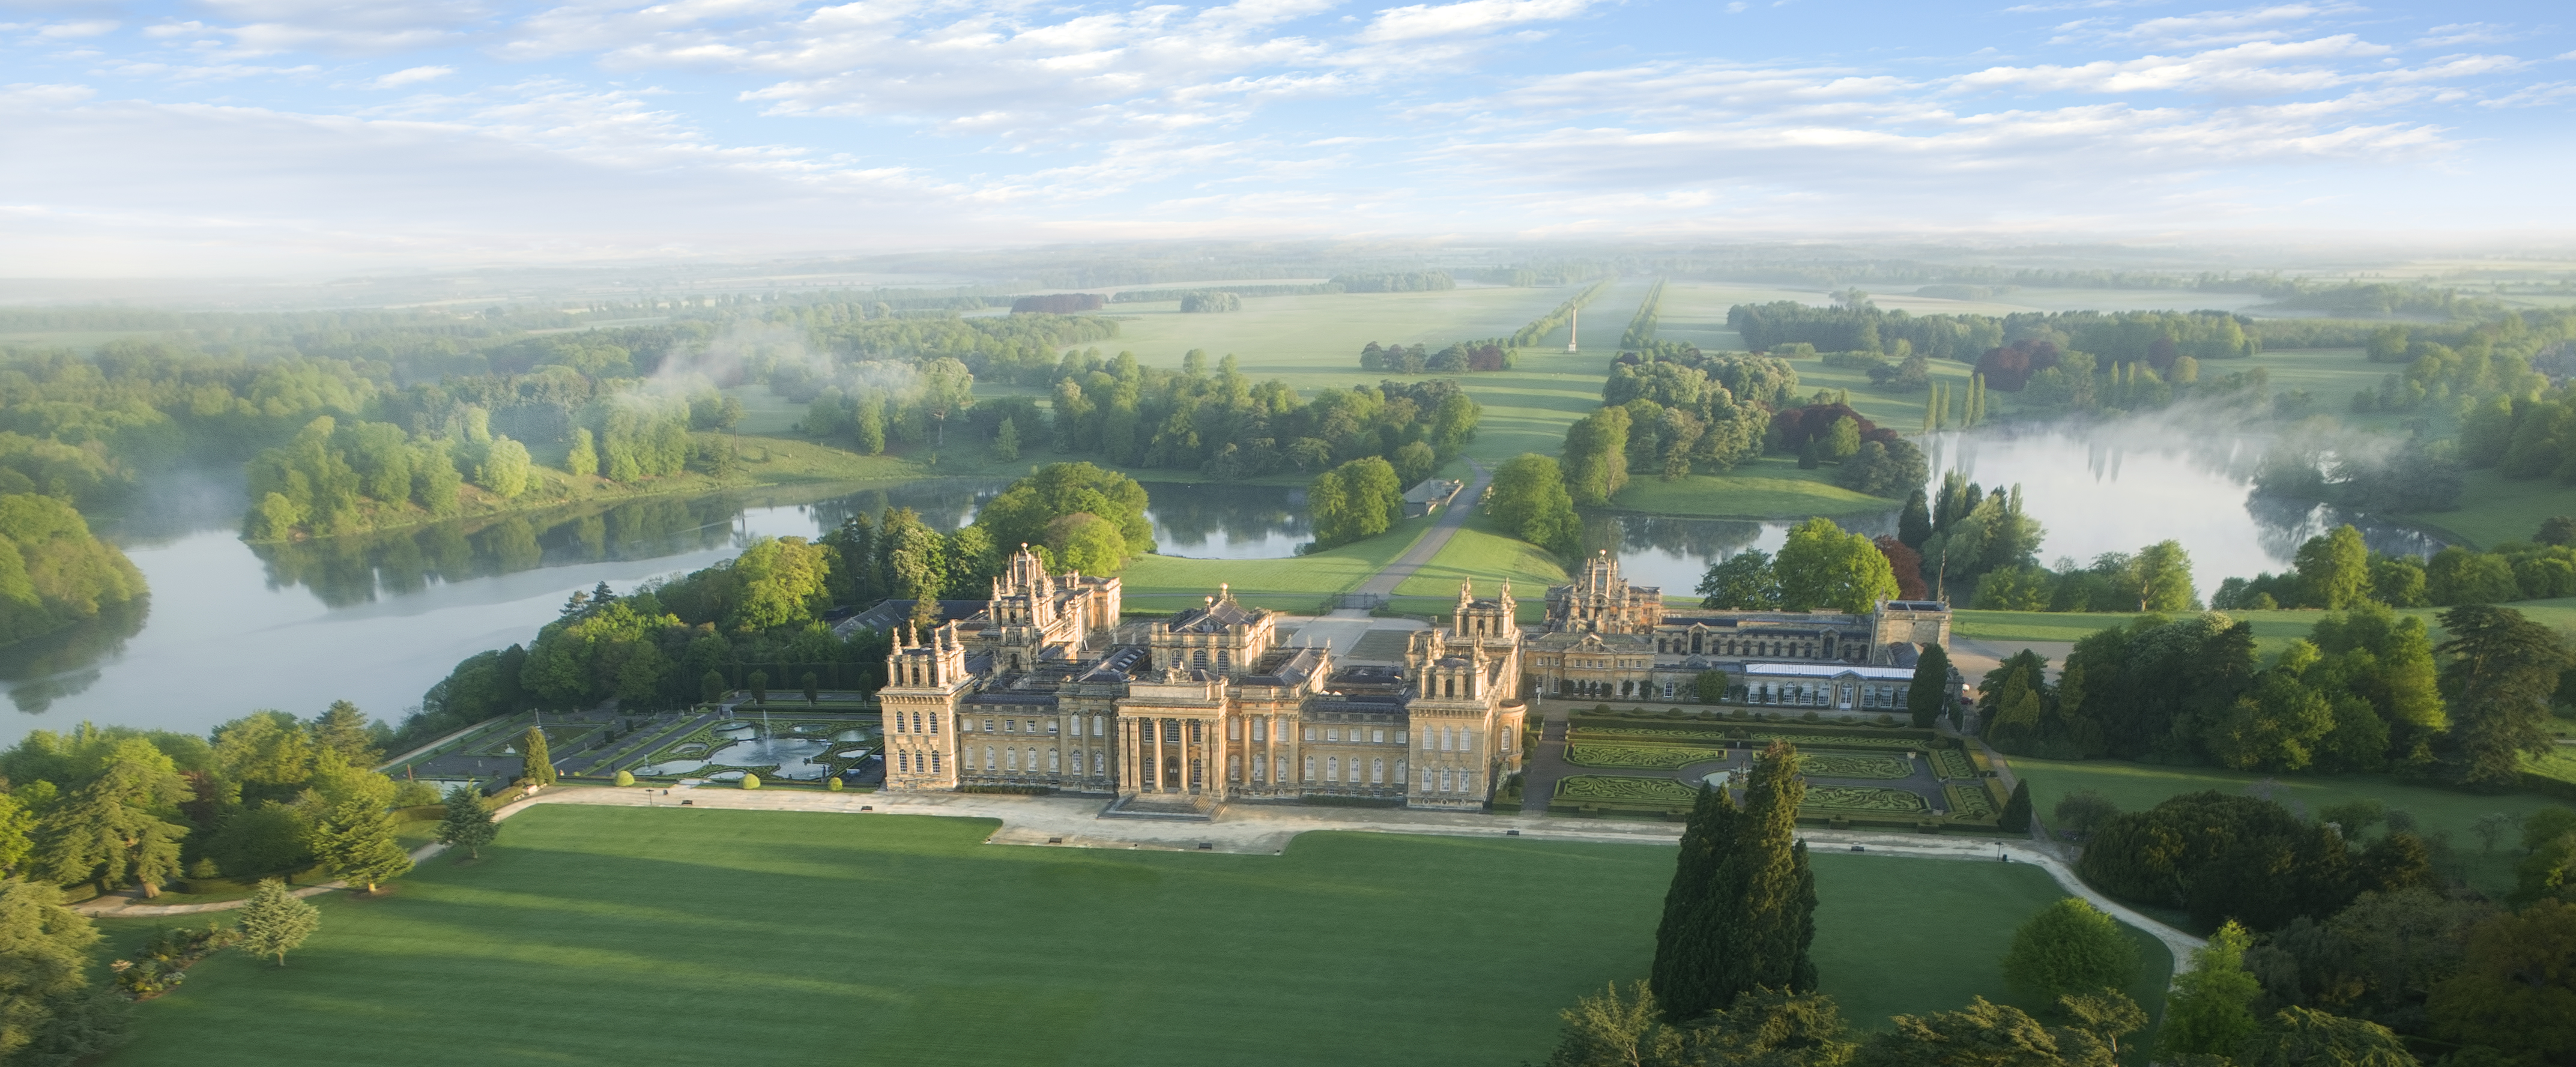 Blenheim Palace provides the stunning setting for the autumn literary festival.